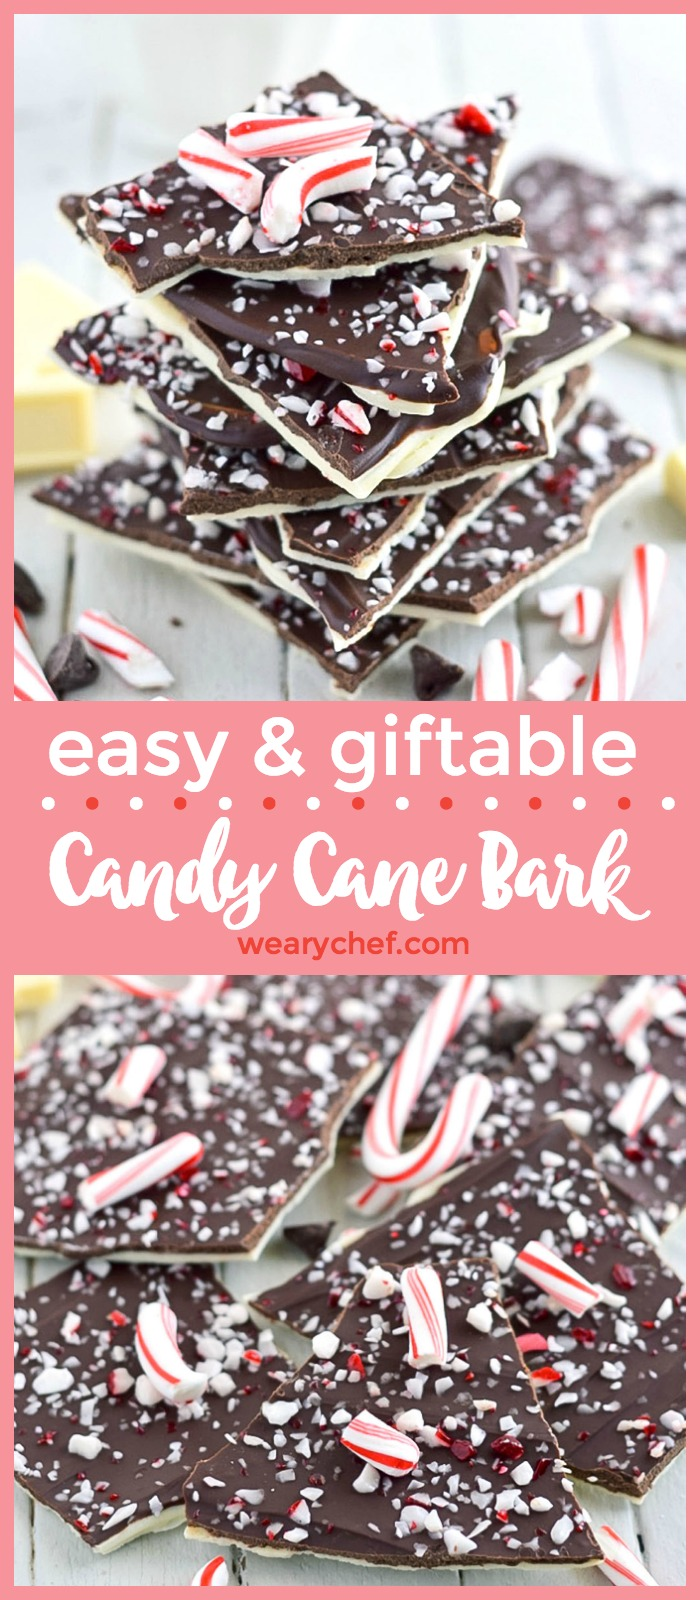 This easy candy cane bark should be a Christmas staple in every house that celebrates the holiday. It's one of those must-have recipes this time of year, and it makes a perfect gift!